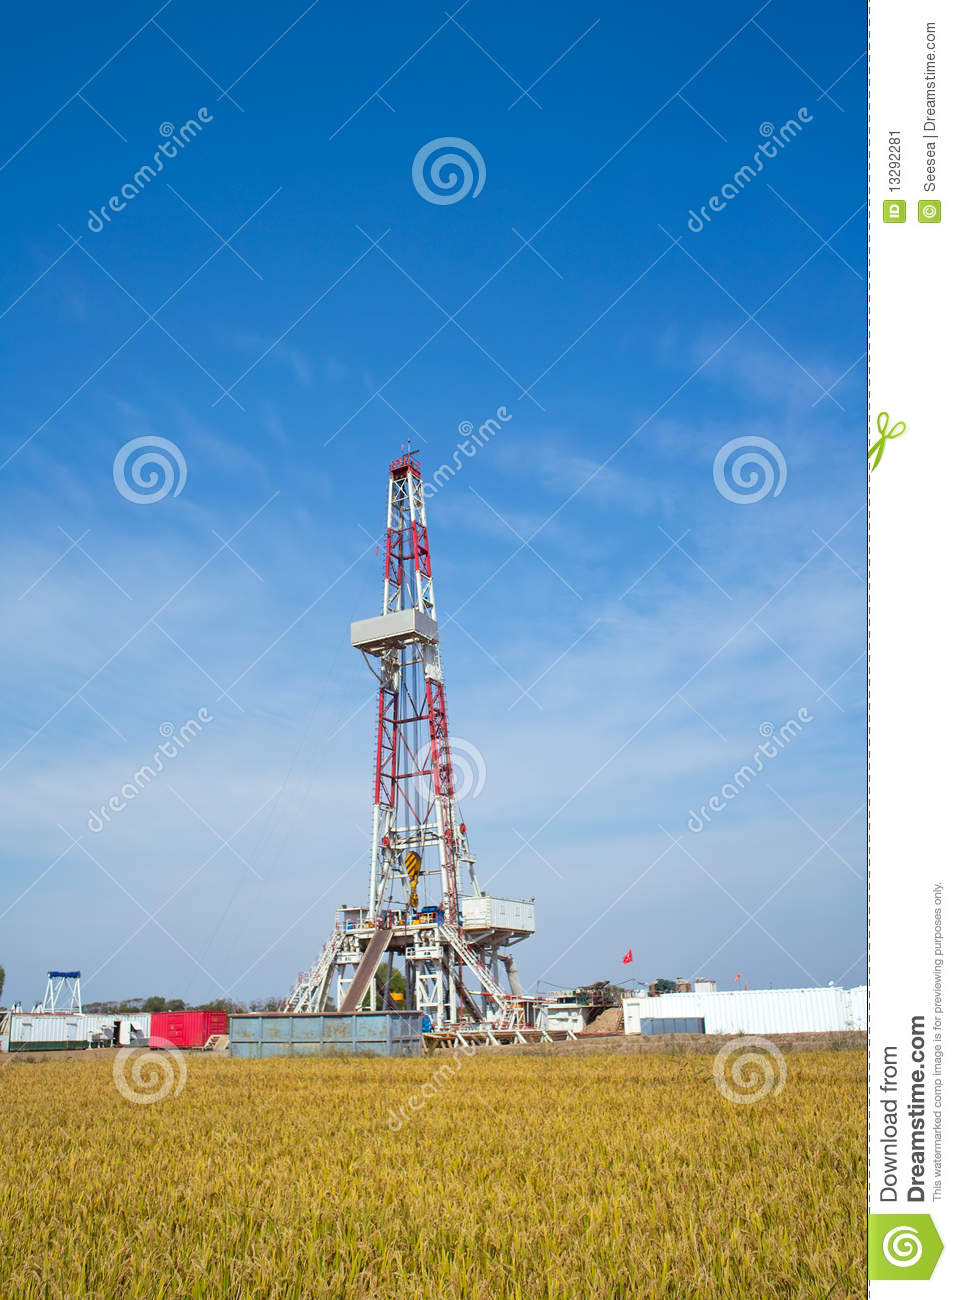 Land Drilling Rig Stock Image   Image  13292281